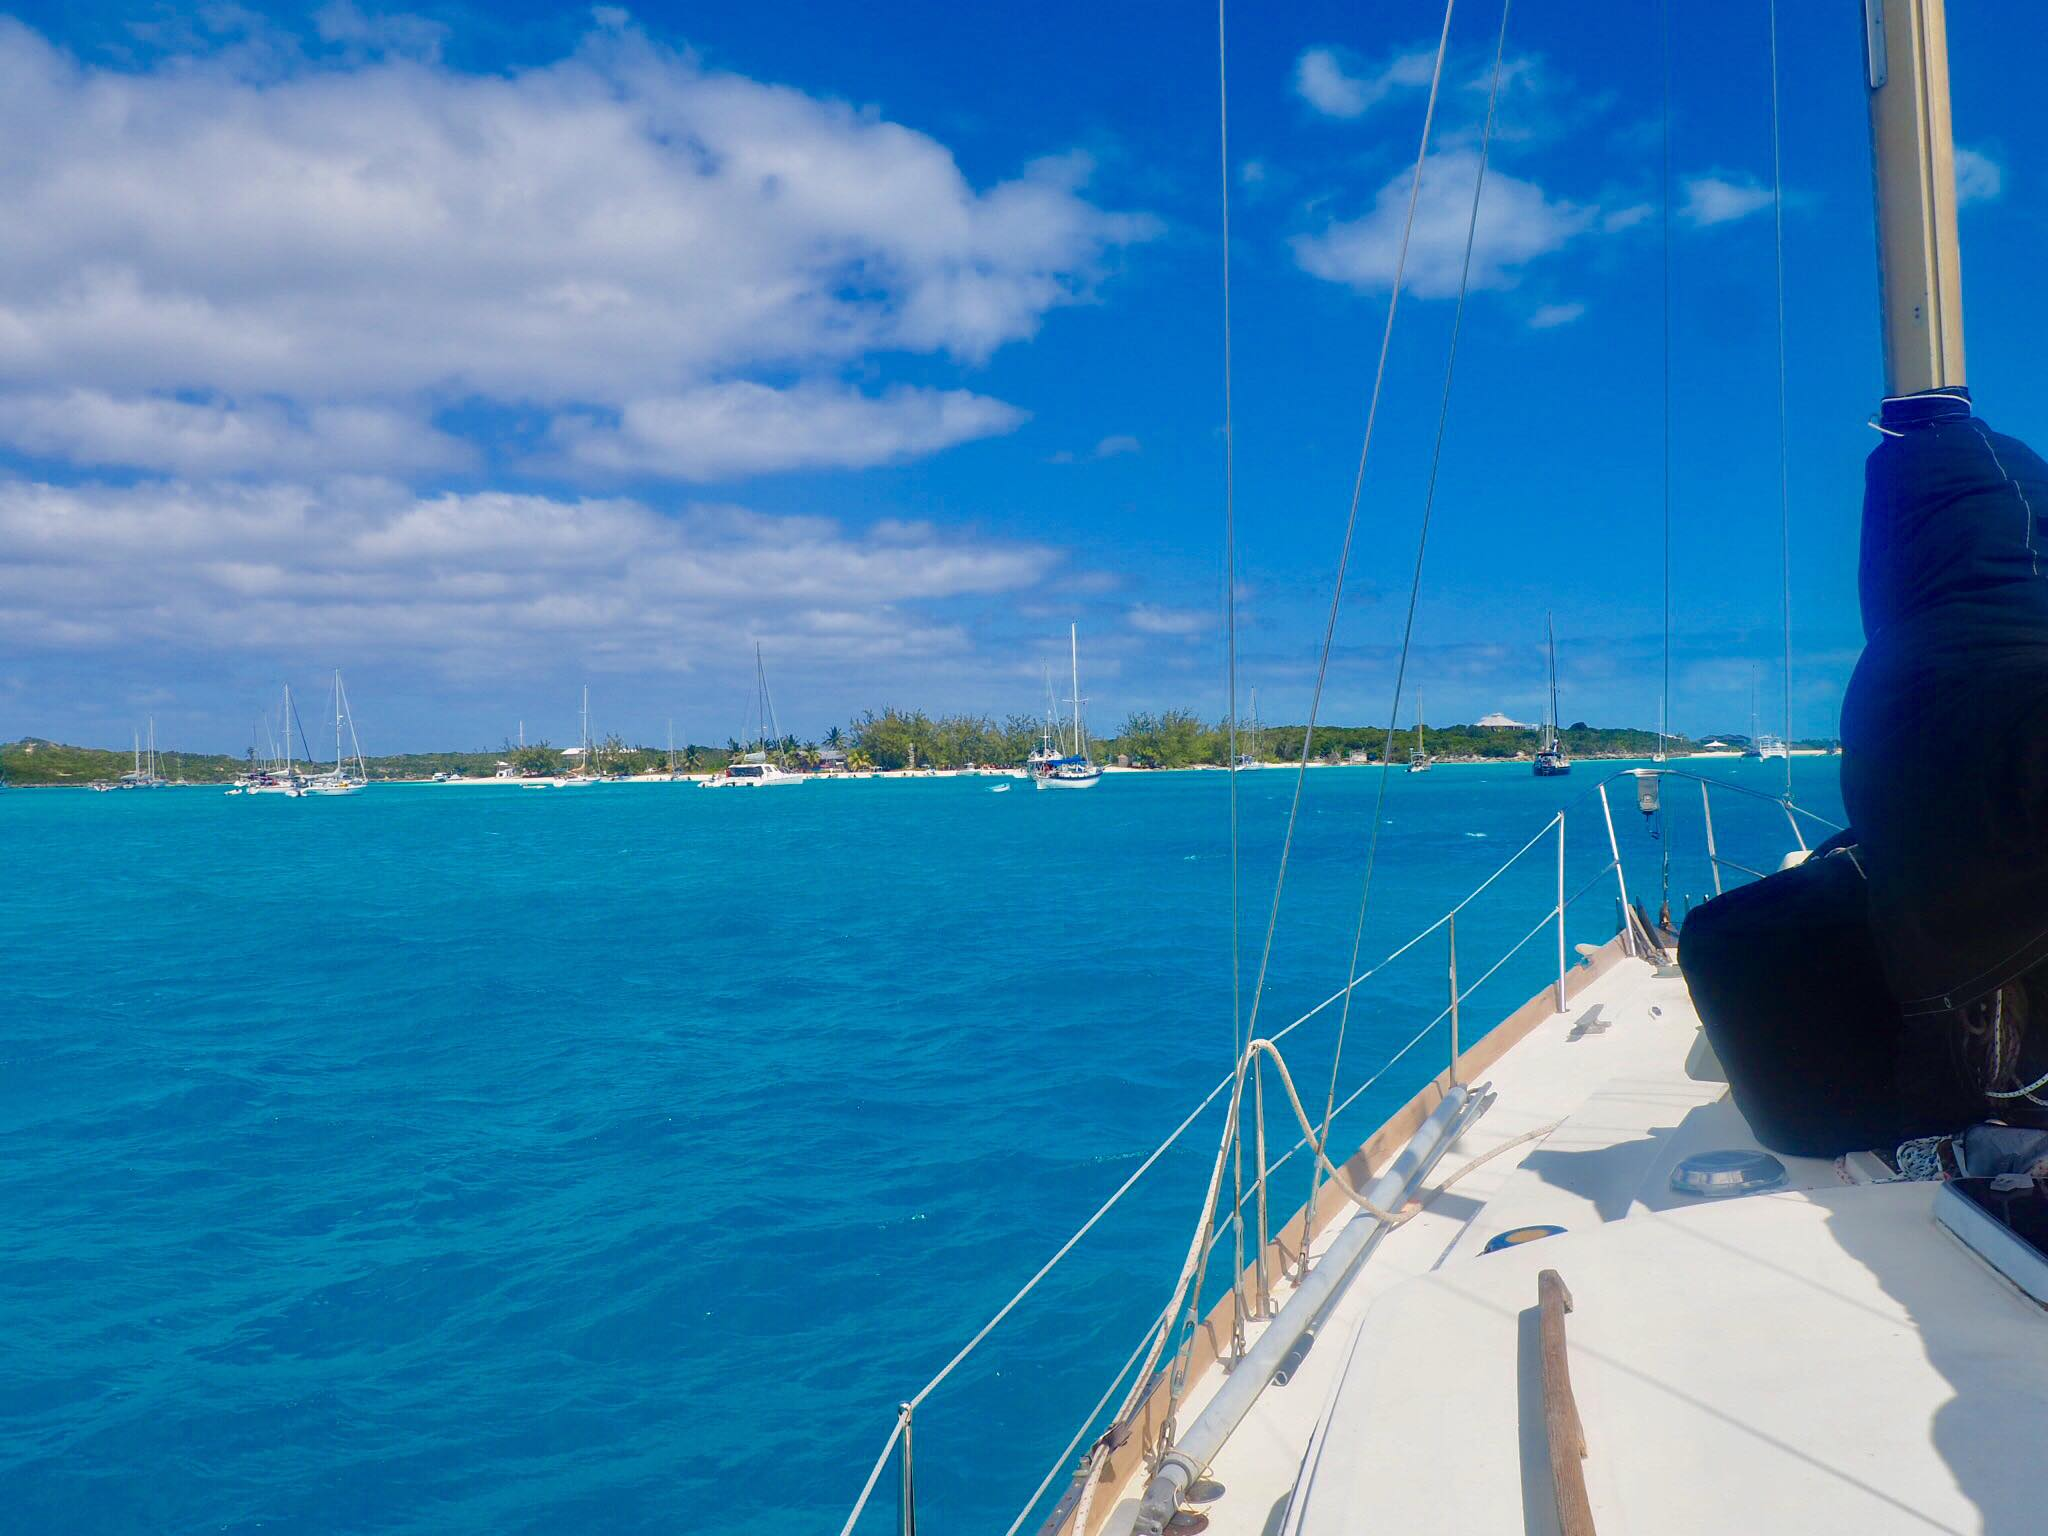 Sailing Life Day 32: Left the Boat to Meet Fellow Cruisers in St Francis Marina here in George Town, Exumas, Bahamas